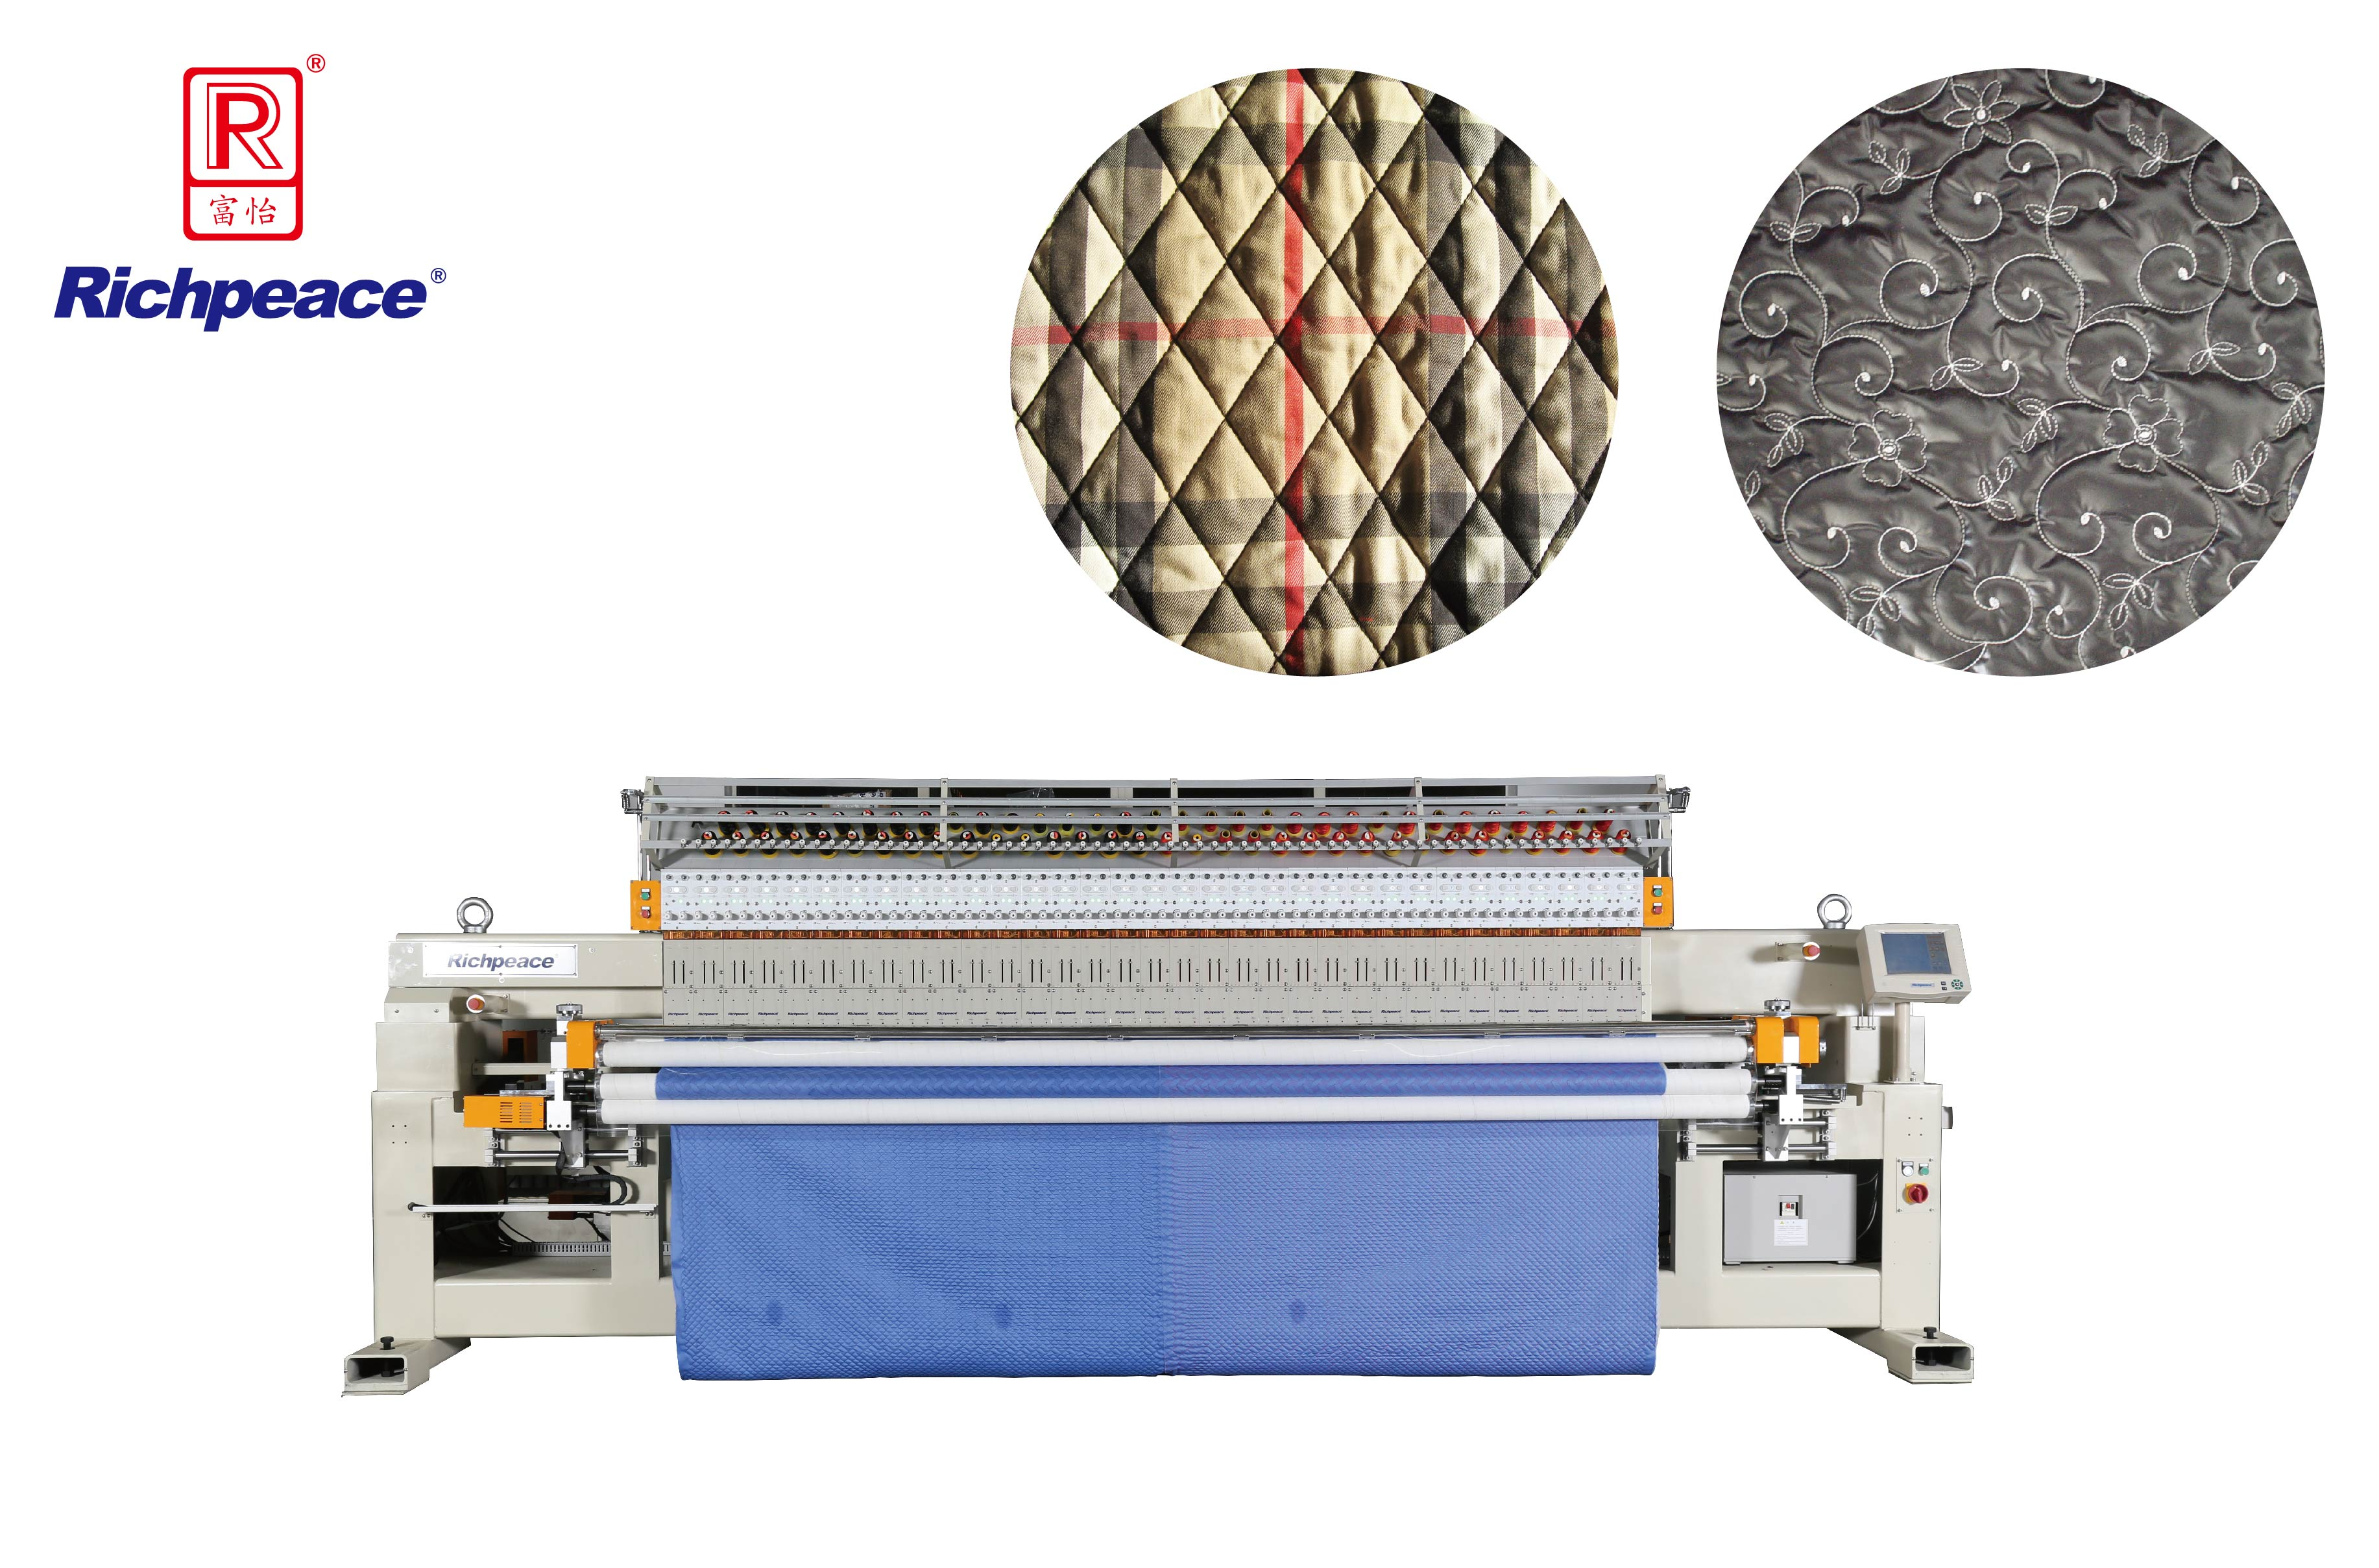 Richpeace Computerized Single-color Single Roll Quilting and Embroidery Machine